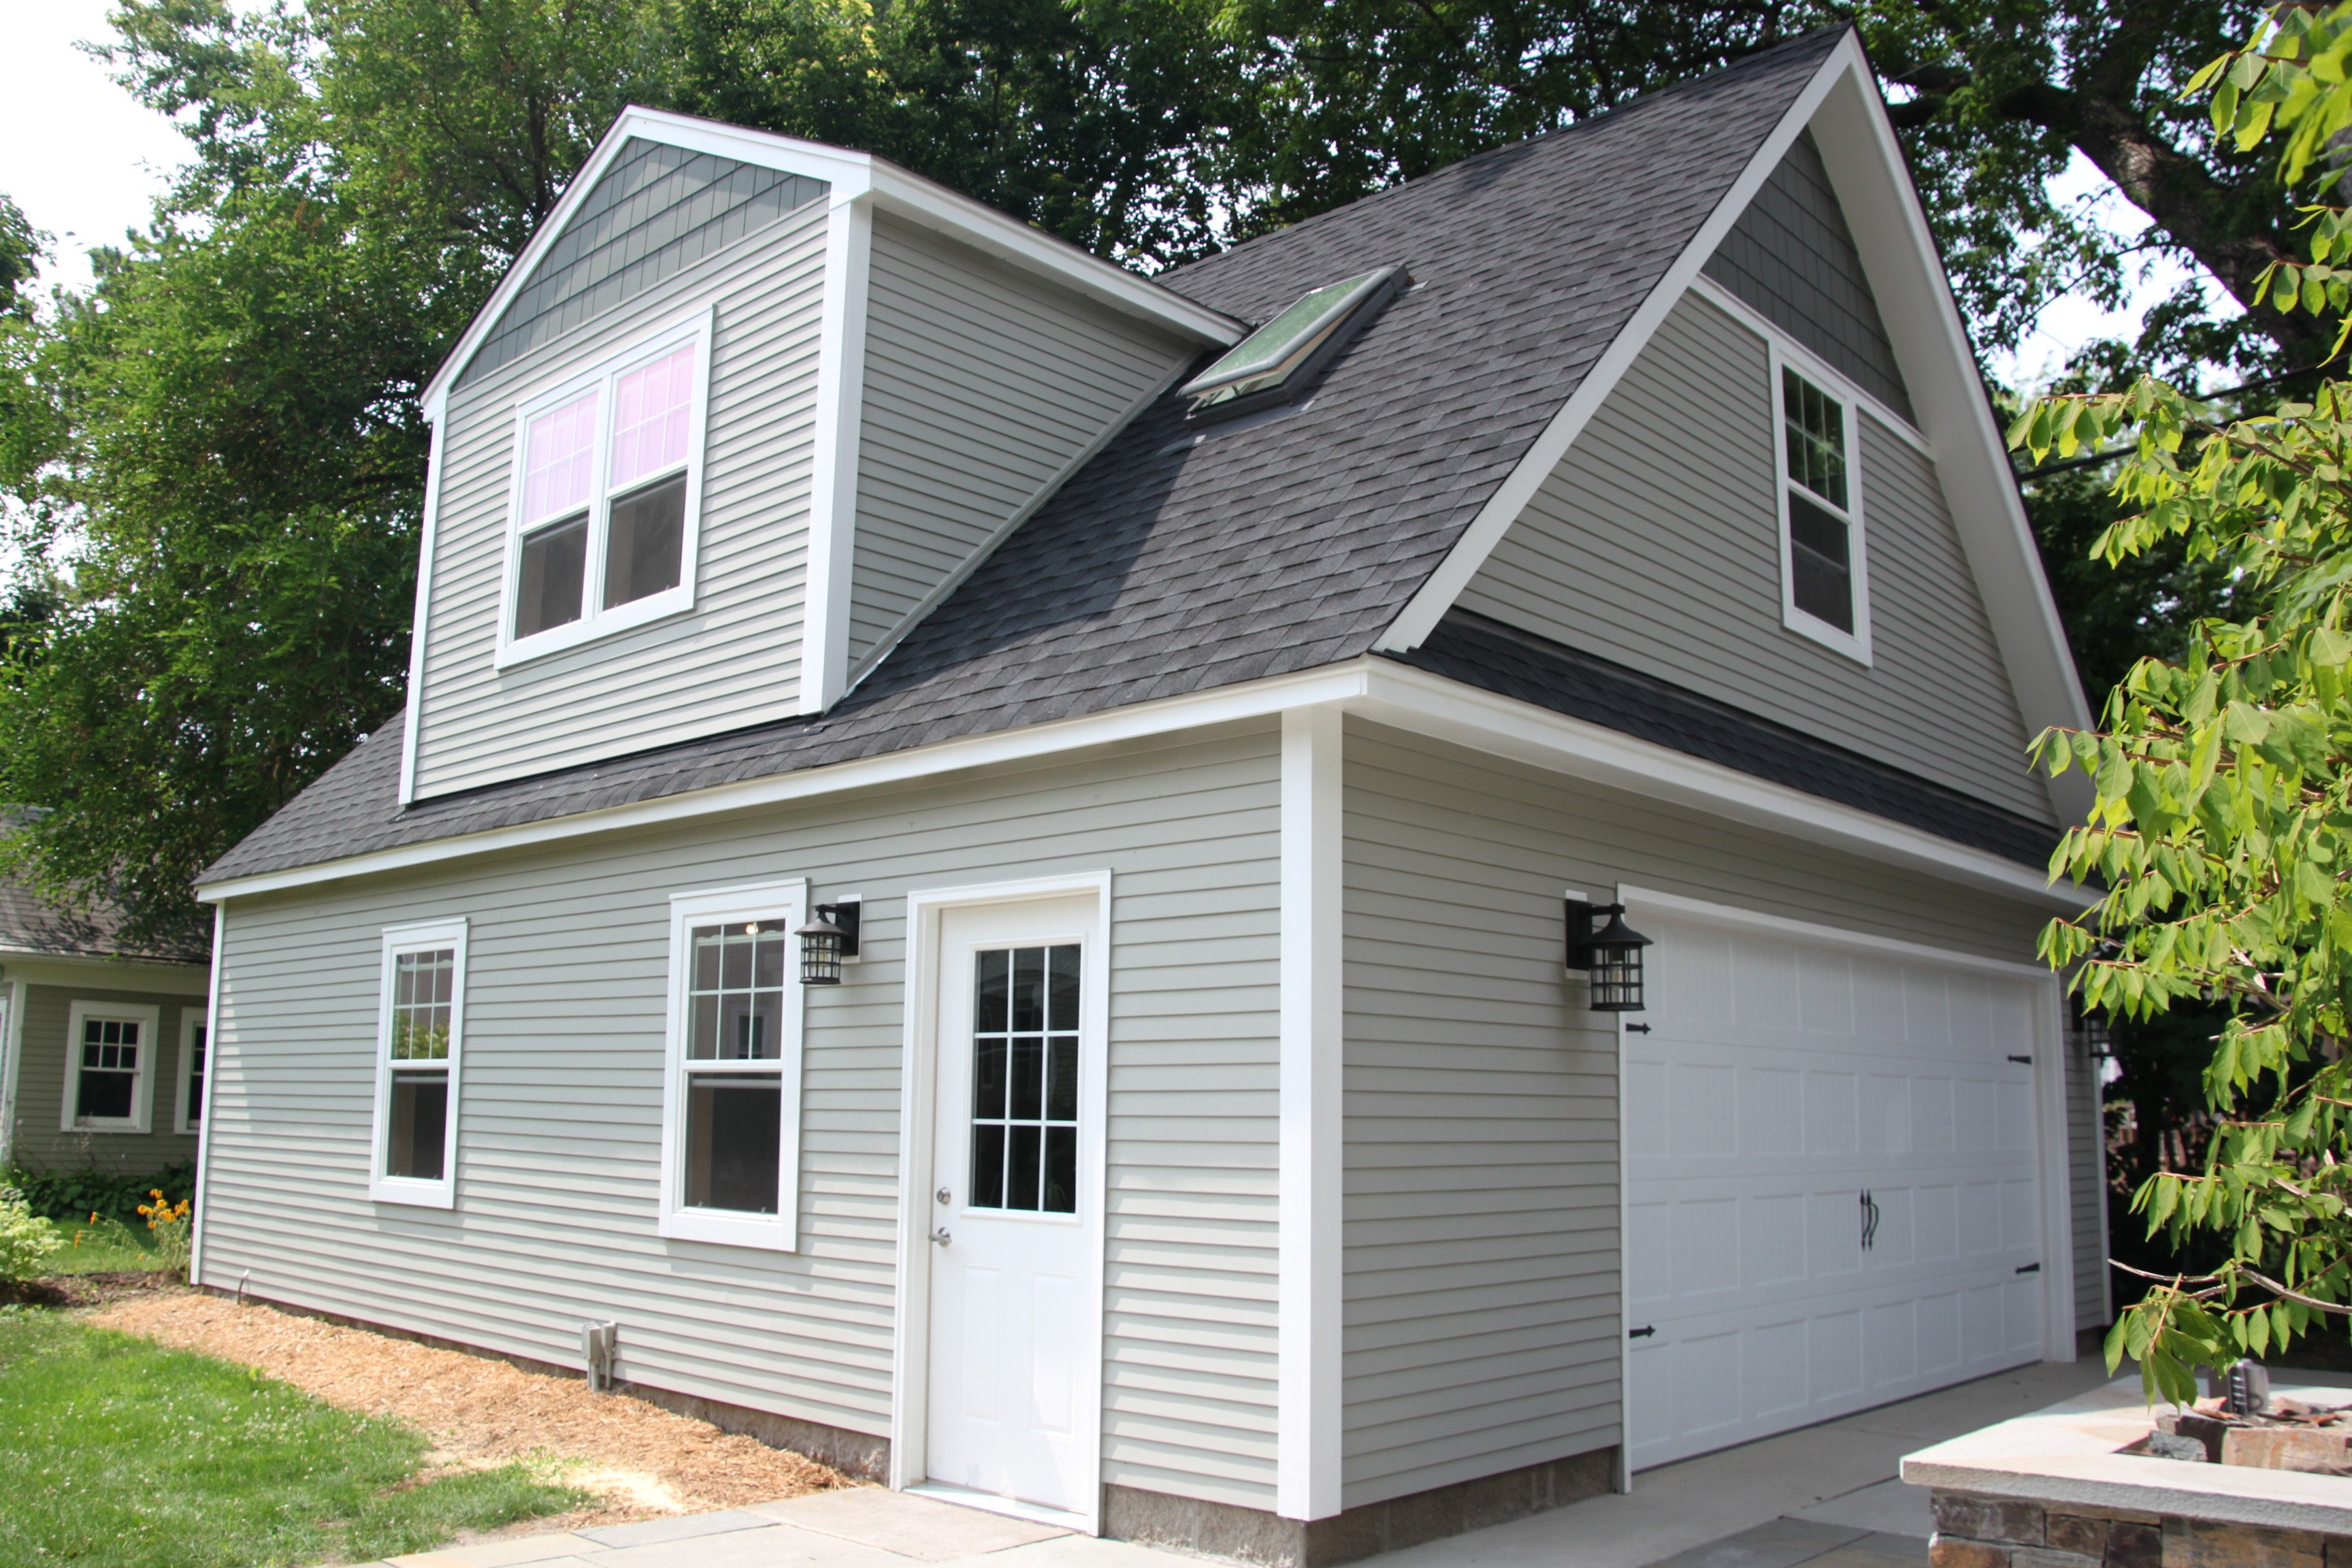 2 car 2 story garage using attic trusses and dormer for Cost of james hardie siding